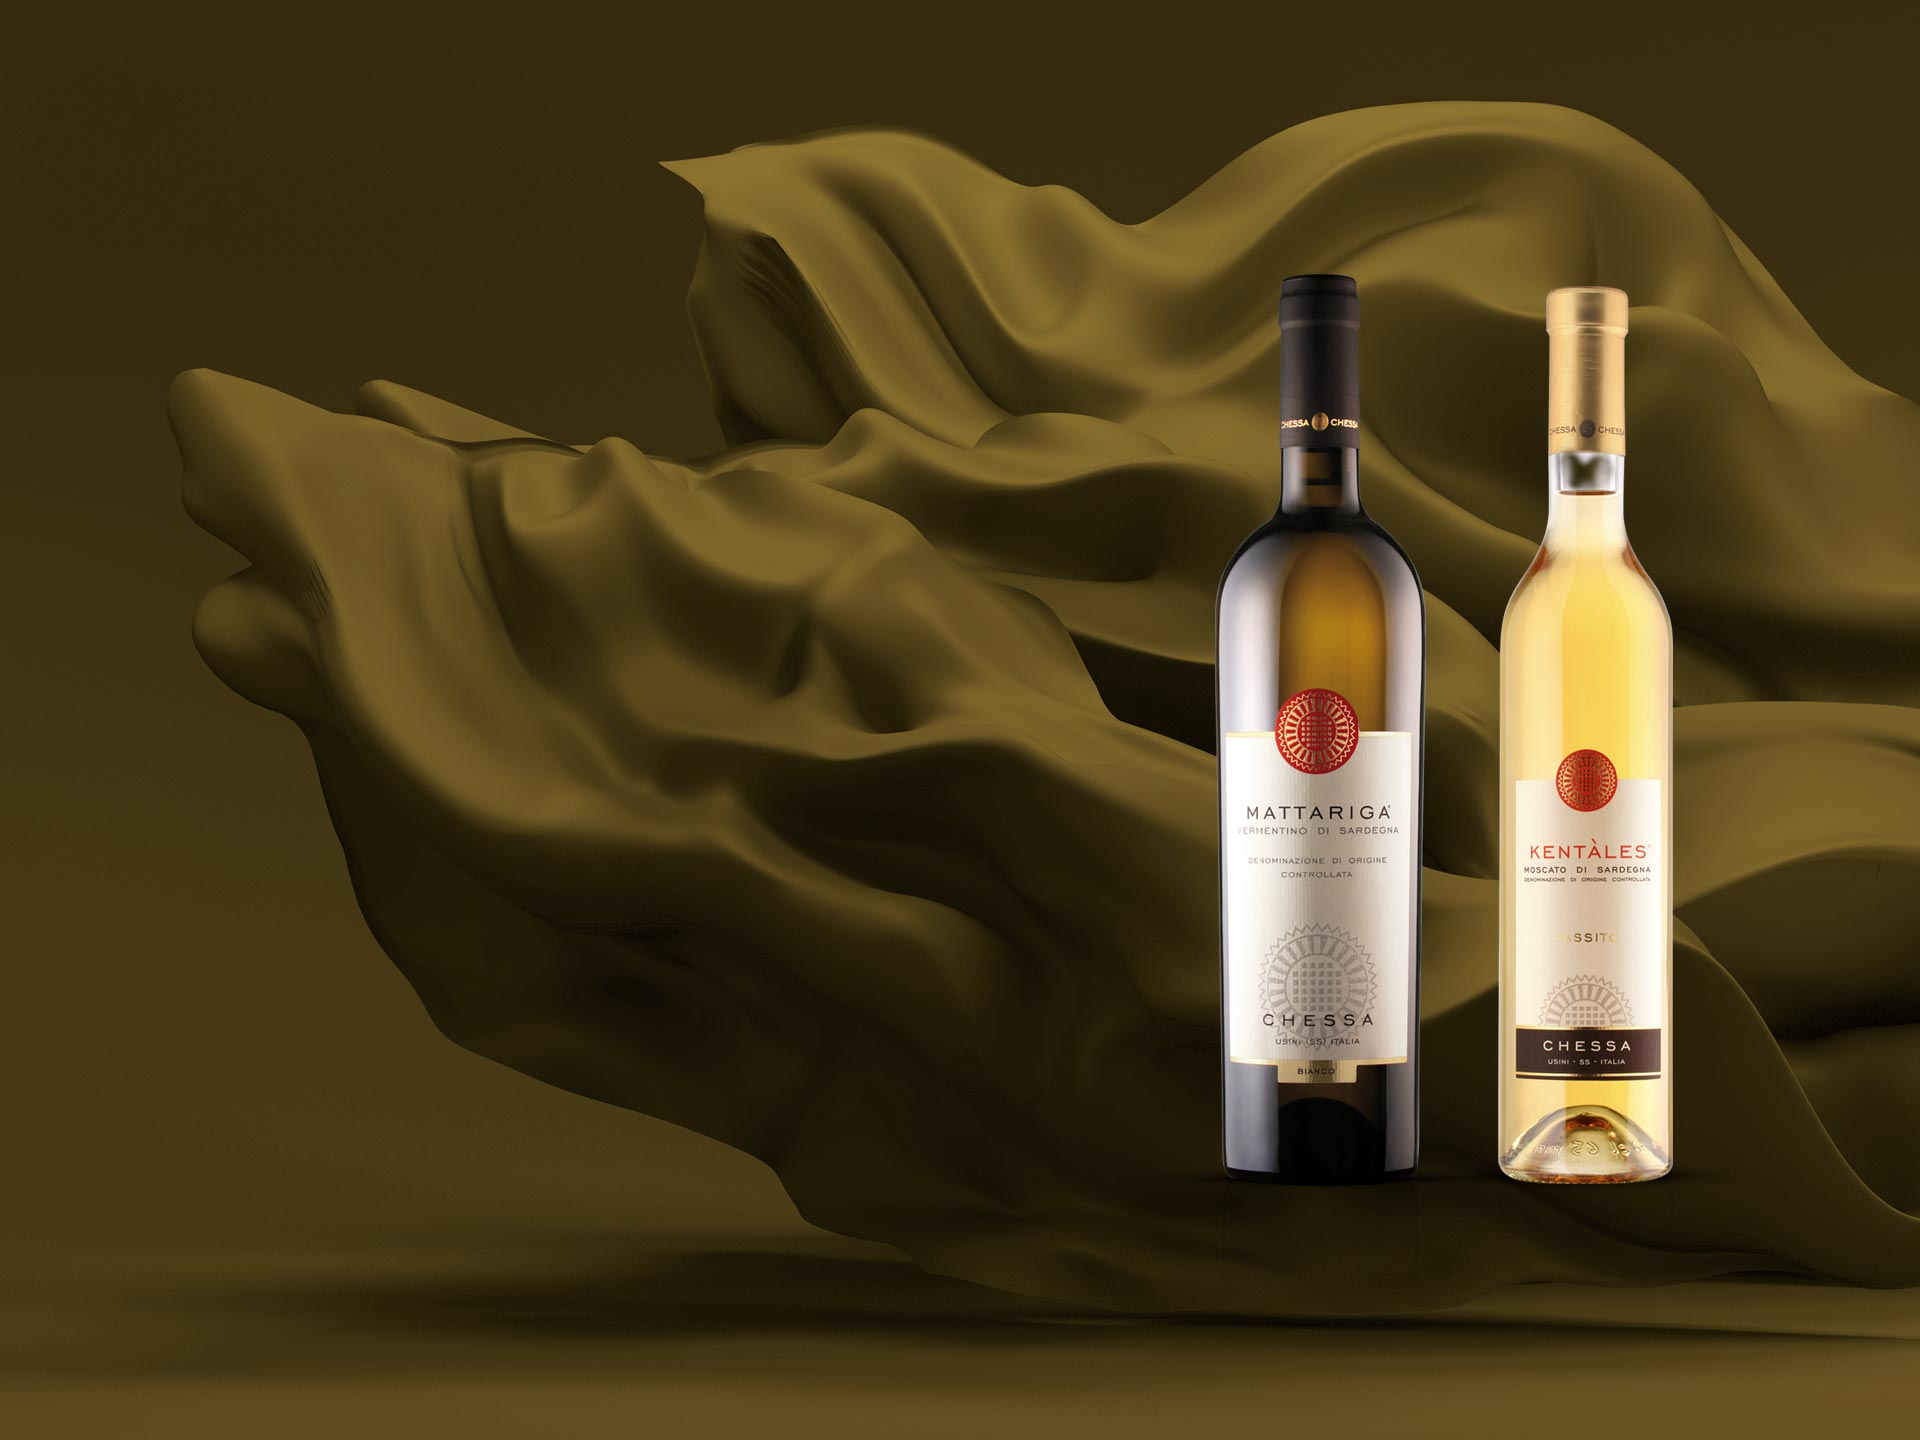 Packaging design etichette dei vini Cantine Chessa